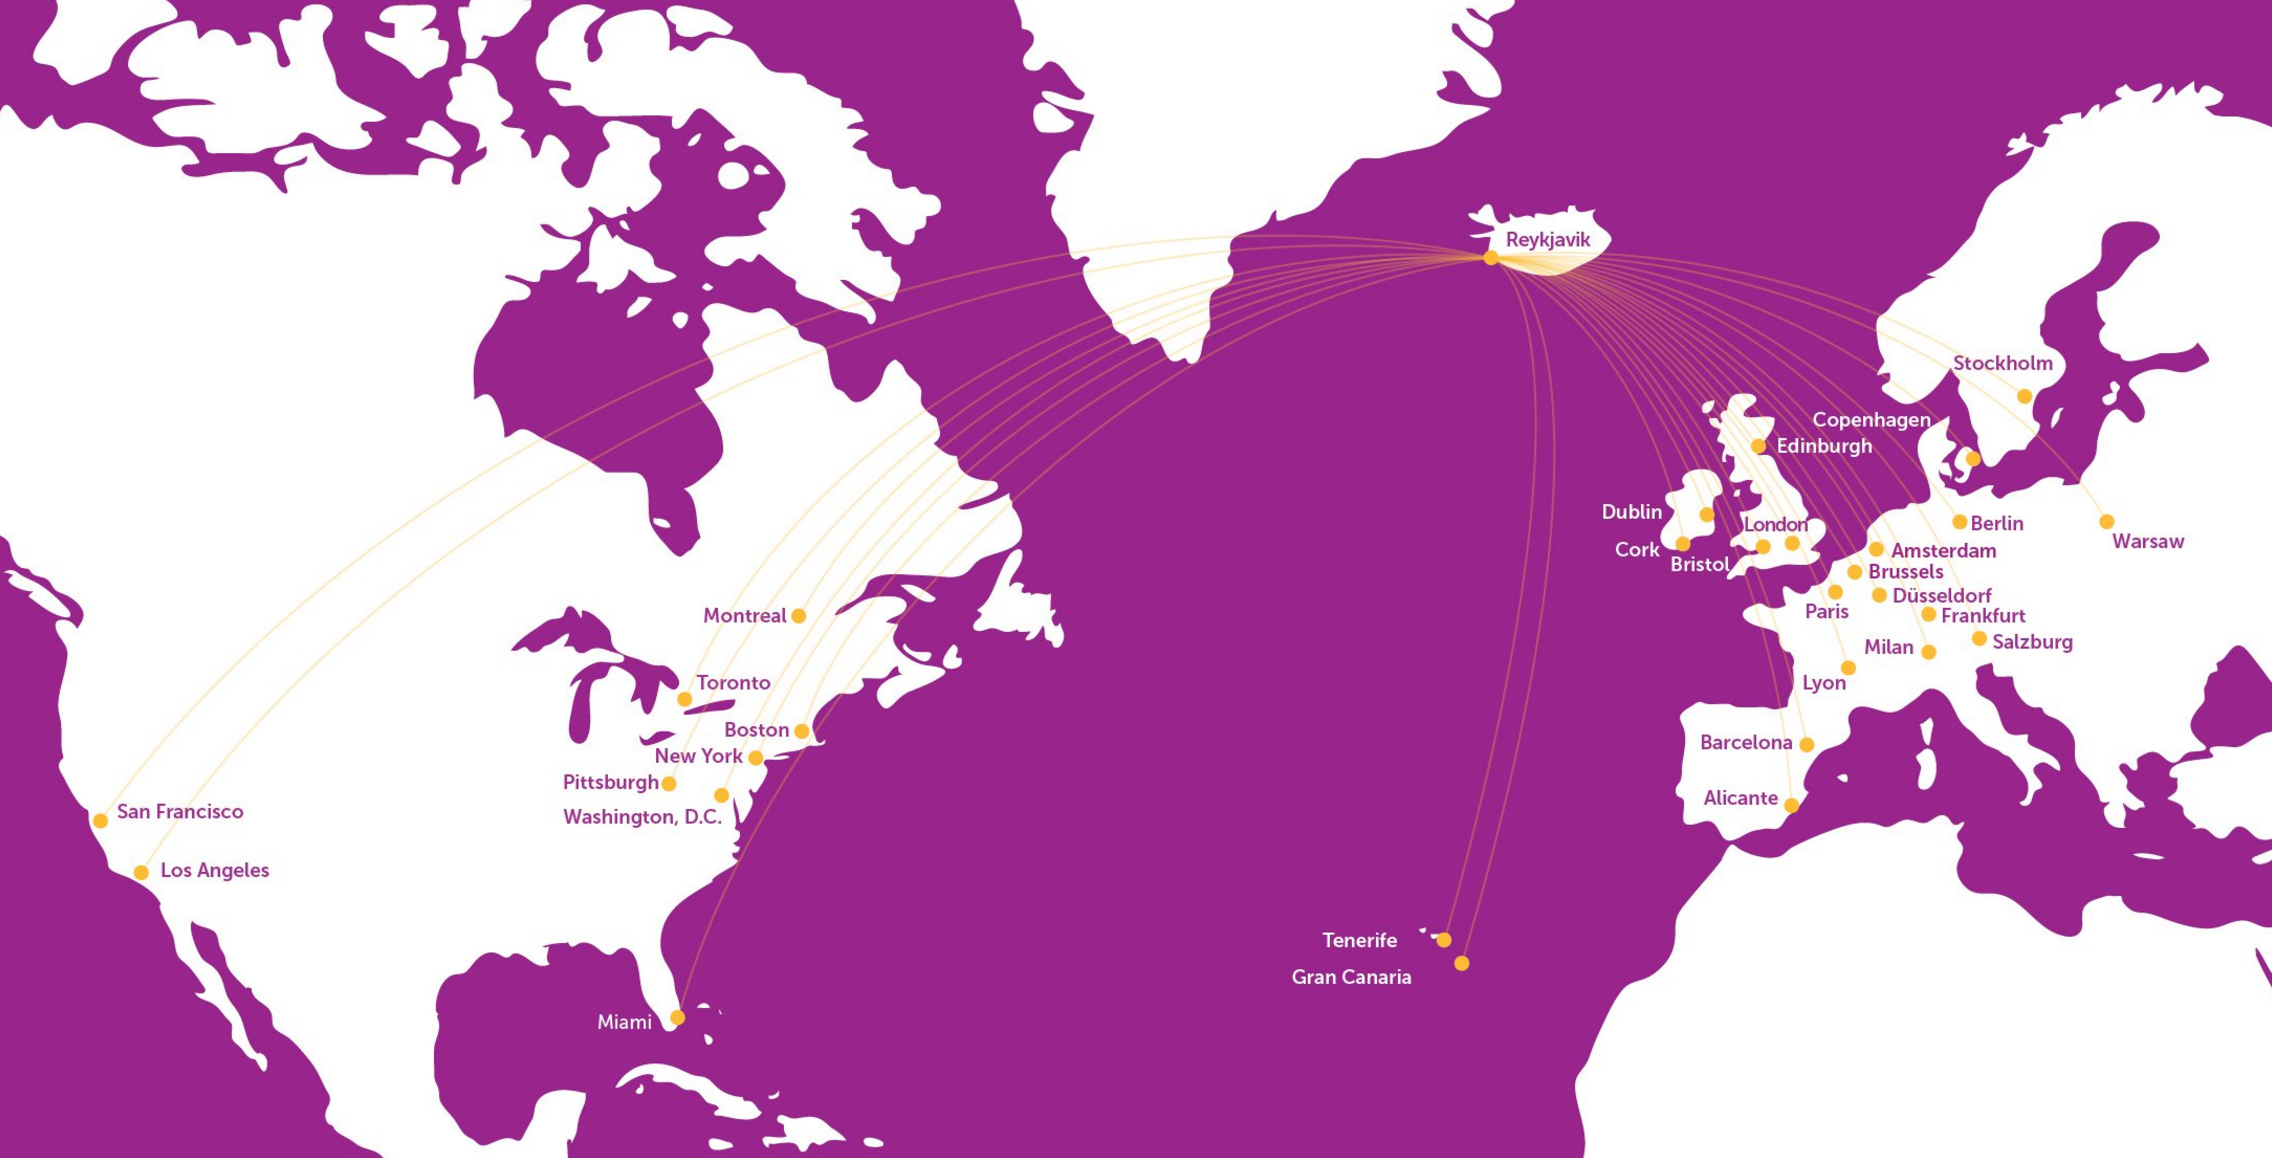 wow air is adding chicago to its route network with the inaugural flight on july 13 2017